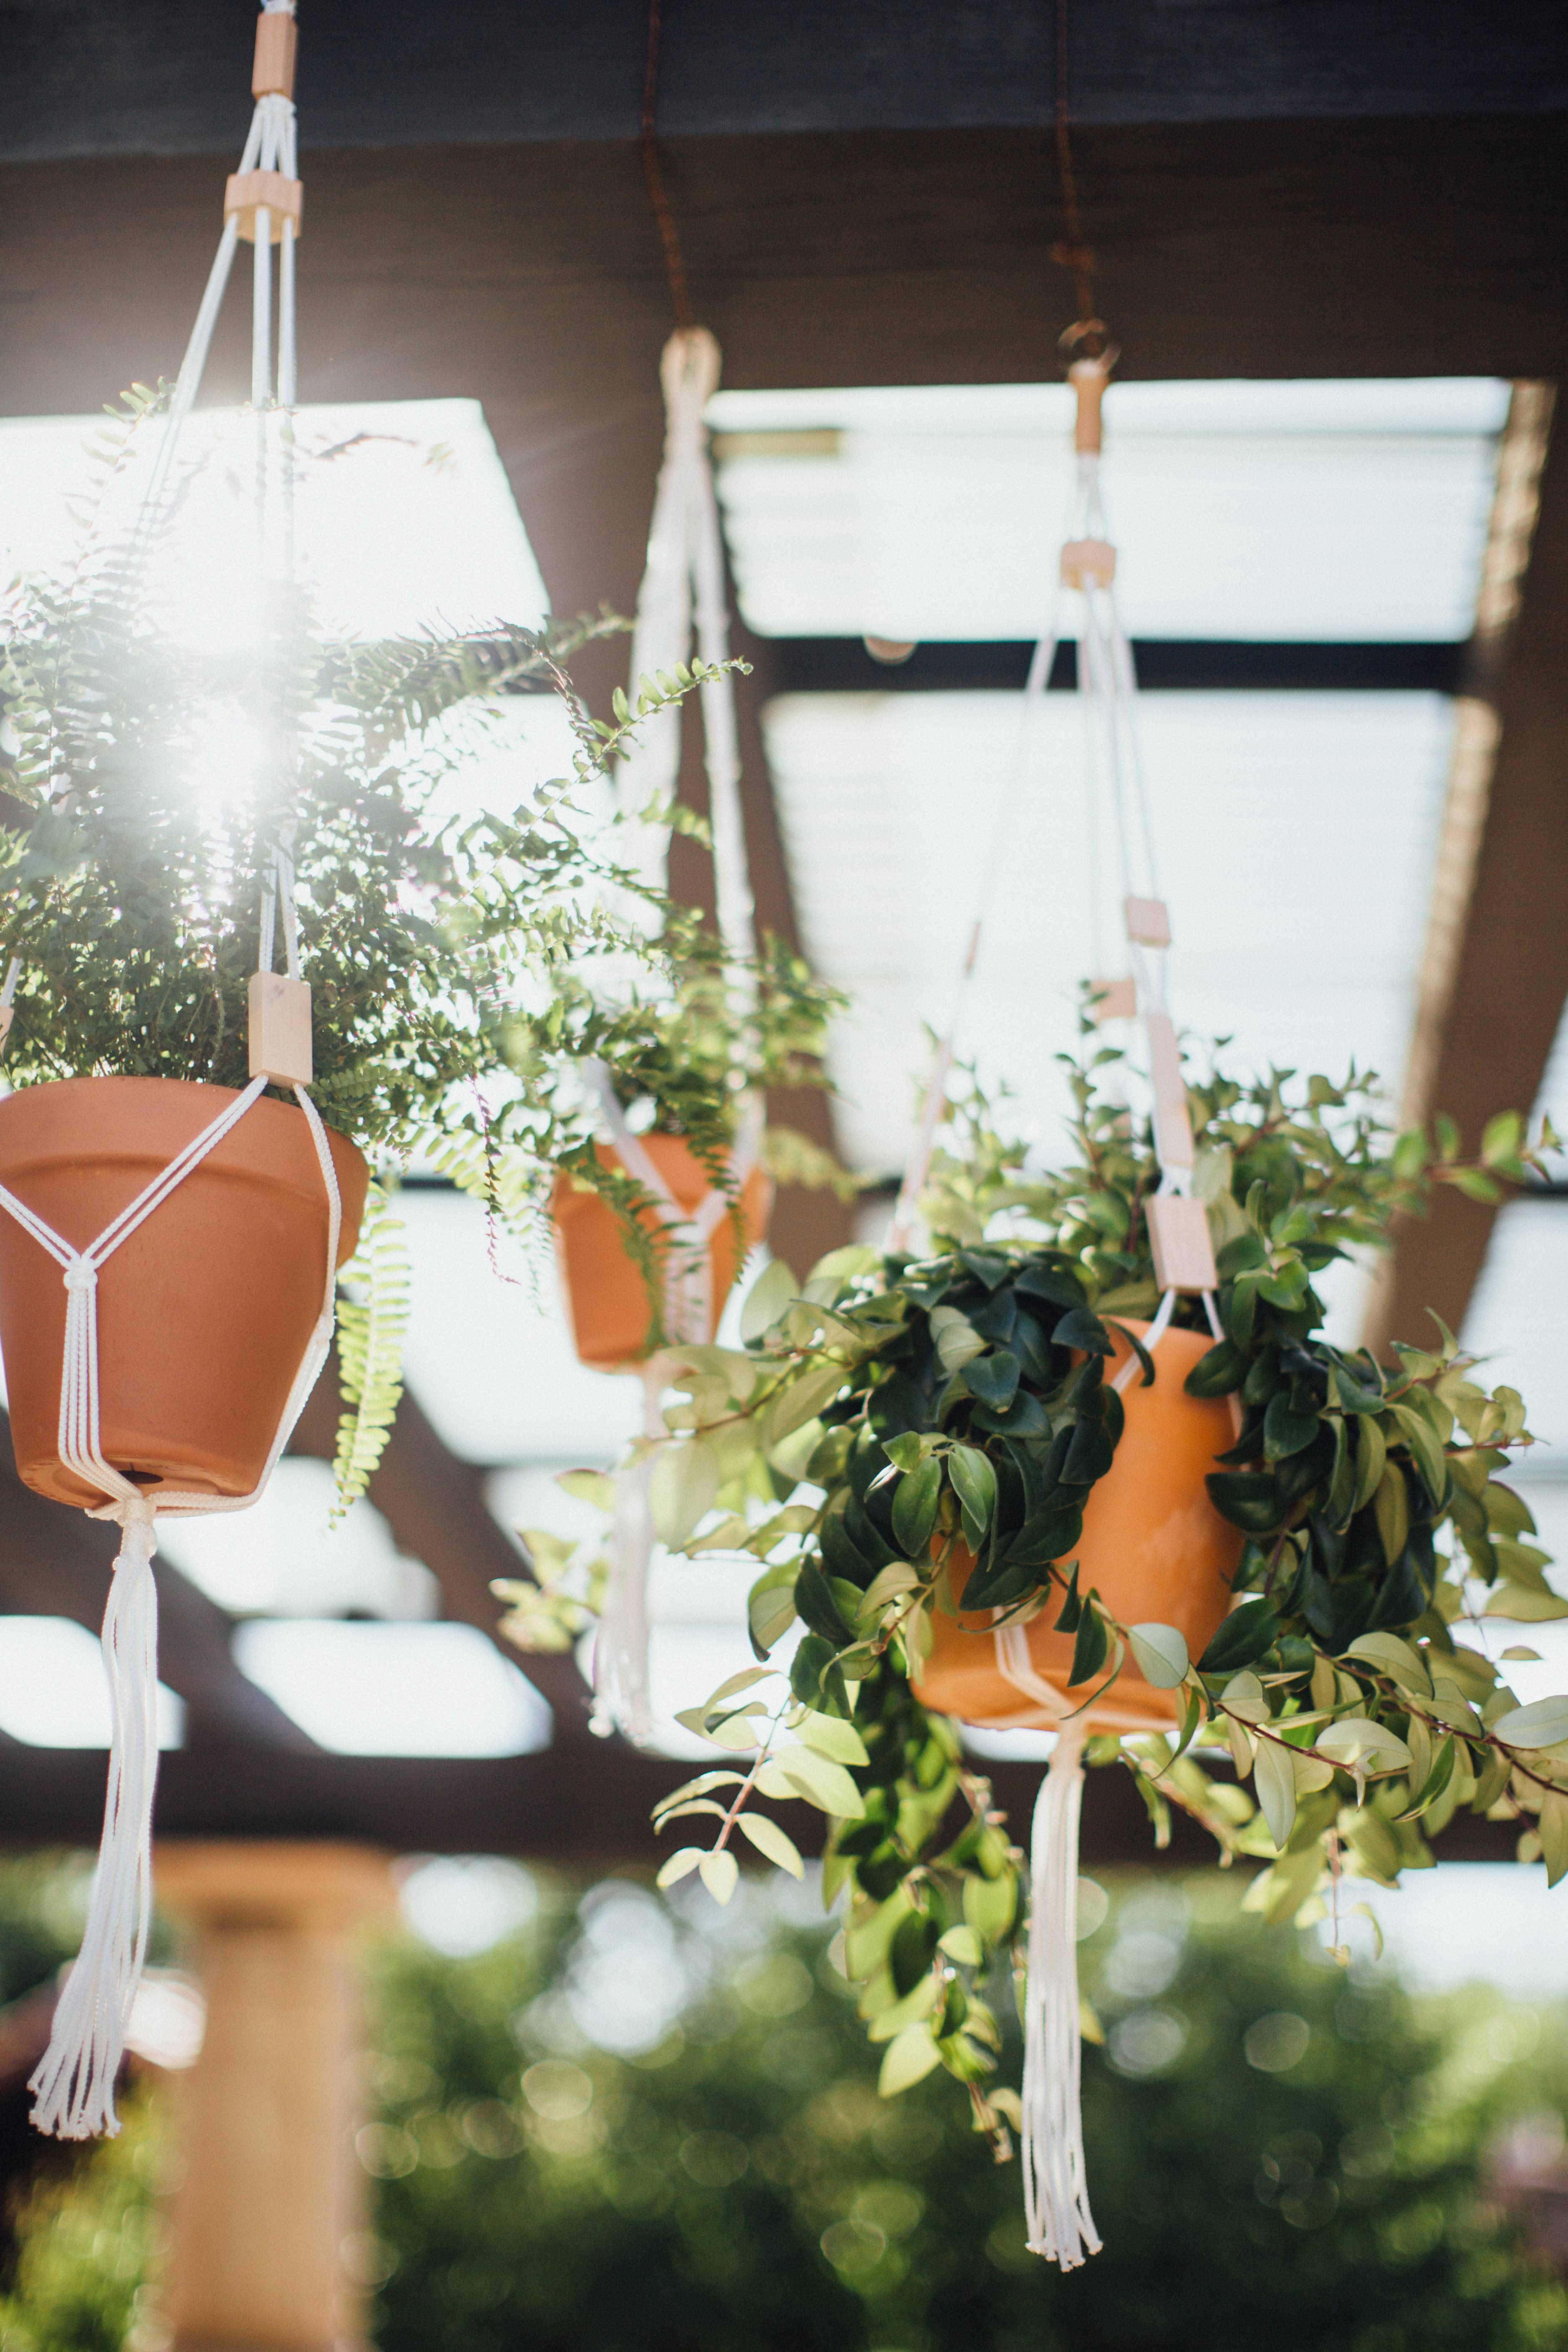 Plant Hangings